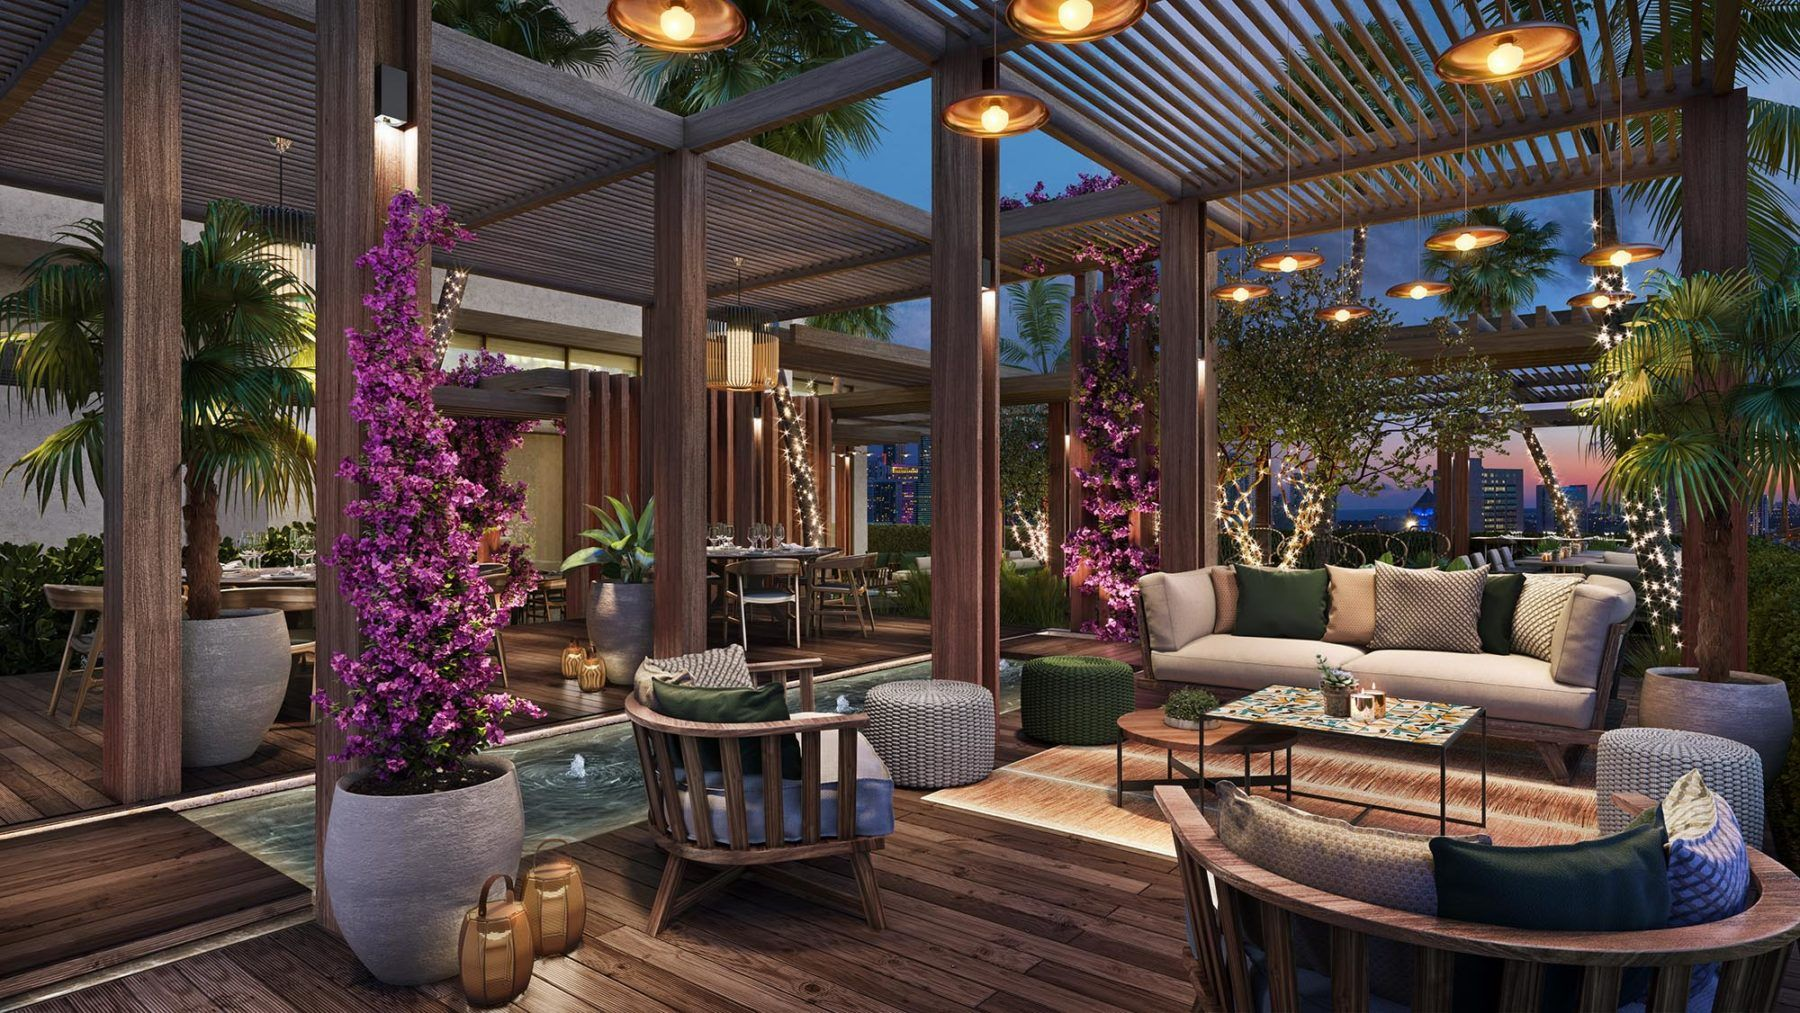 Rooftop dining lounge with sofas and palm trees